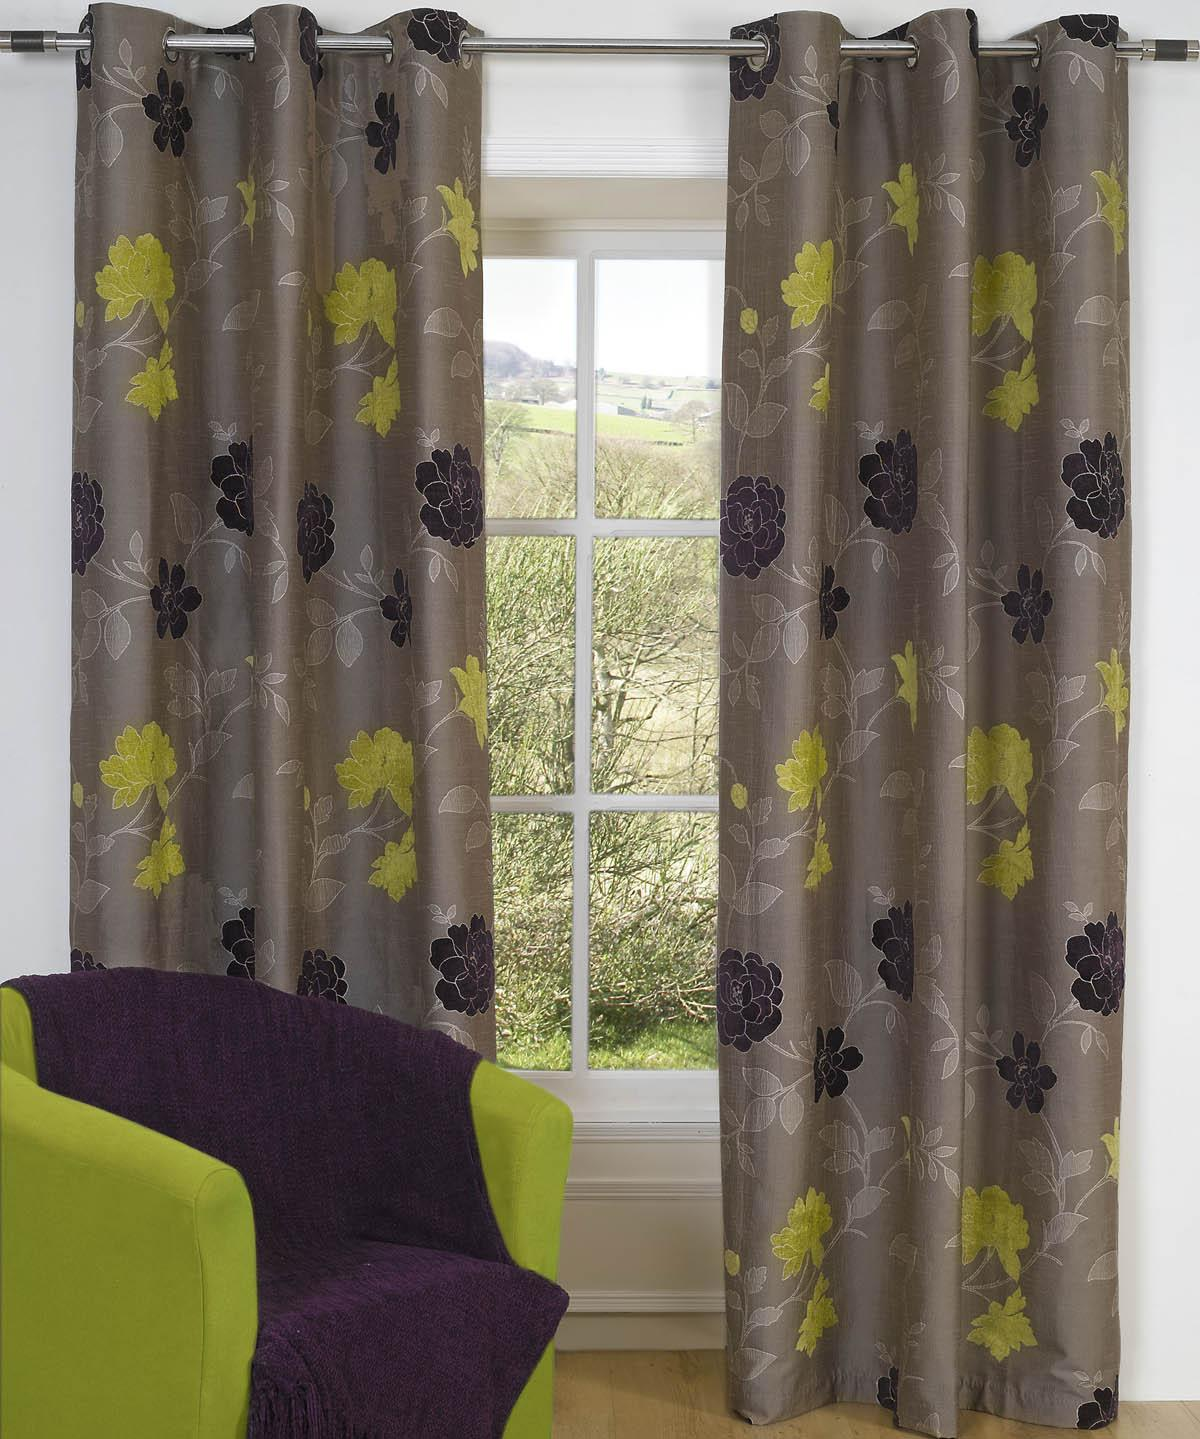 AppleBlackcurrant Casablanca Ready Made Eyelet Curtains